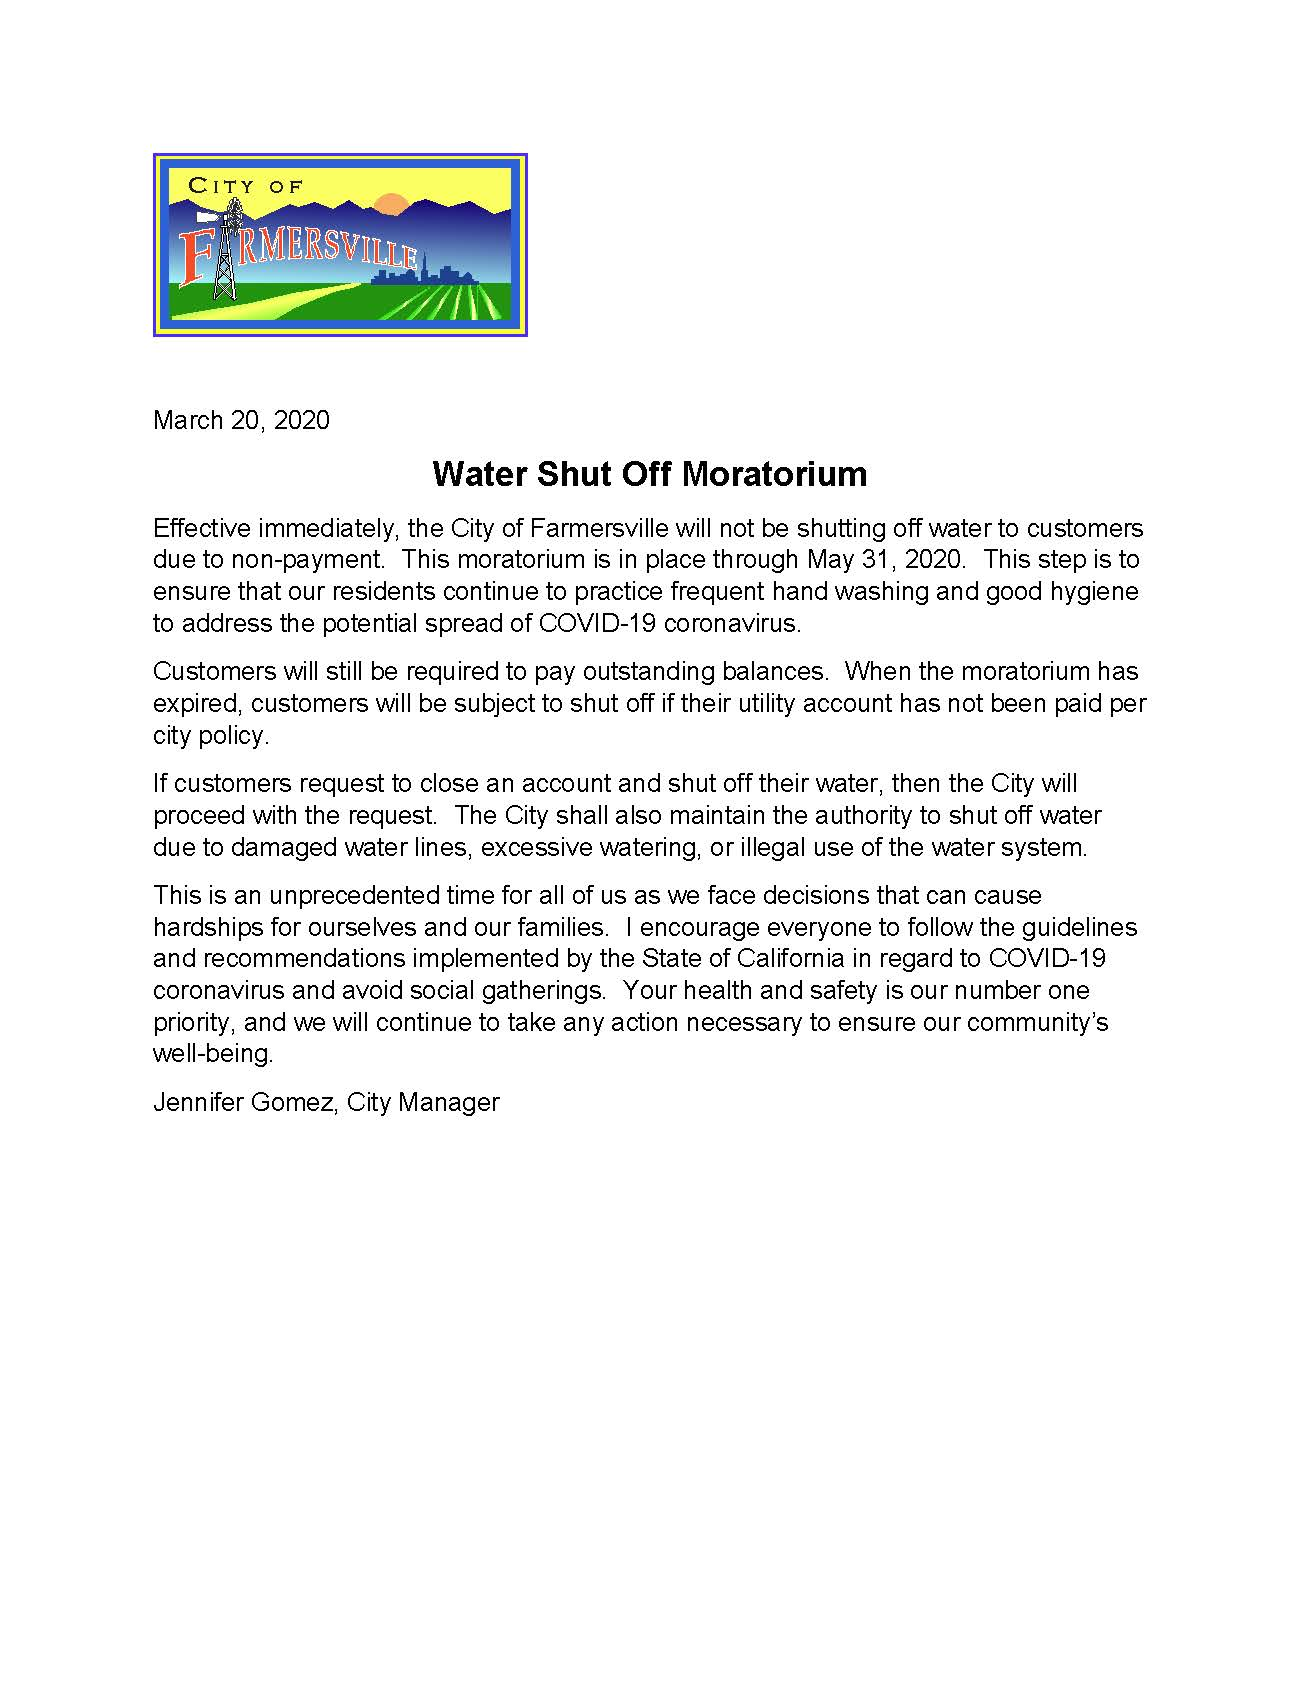 Water Shut Off Moratorium 3 -17 -2020